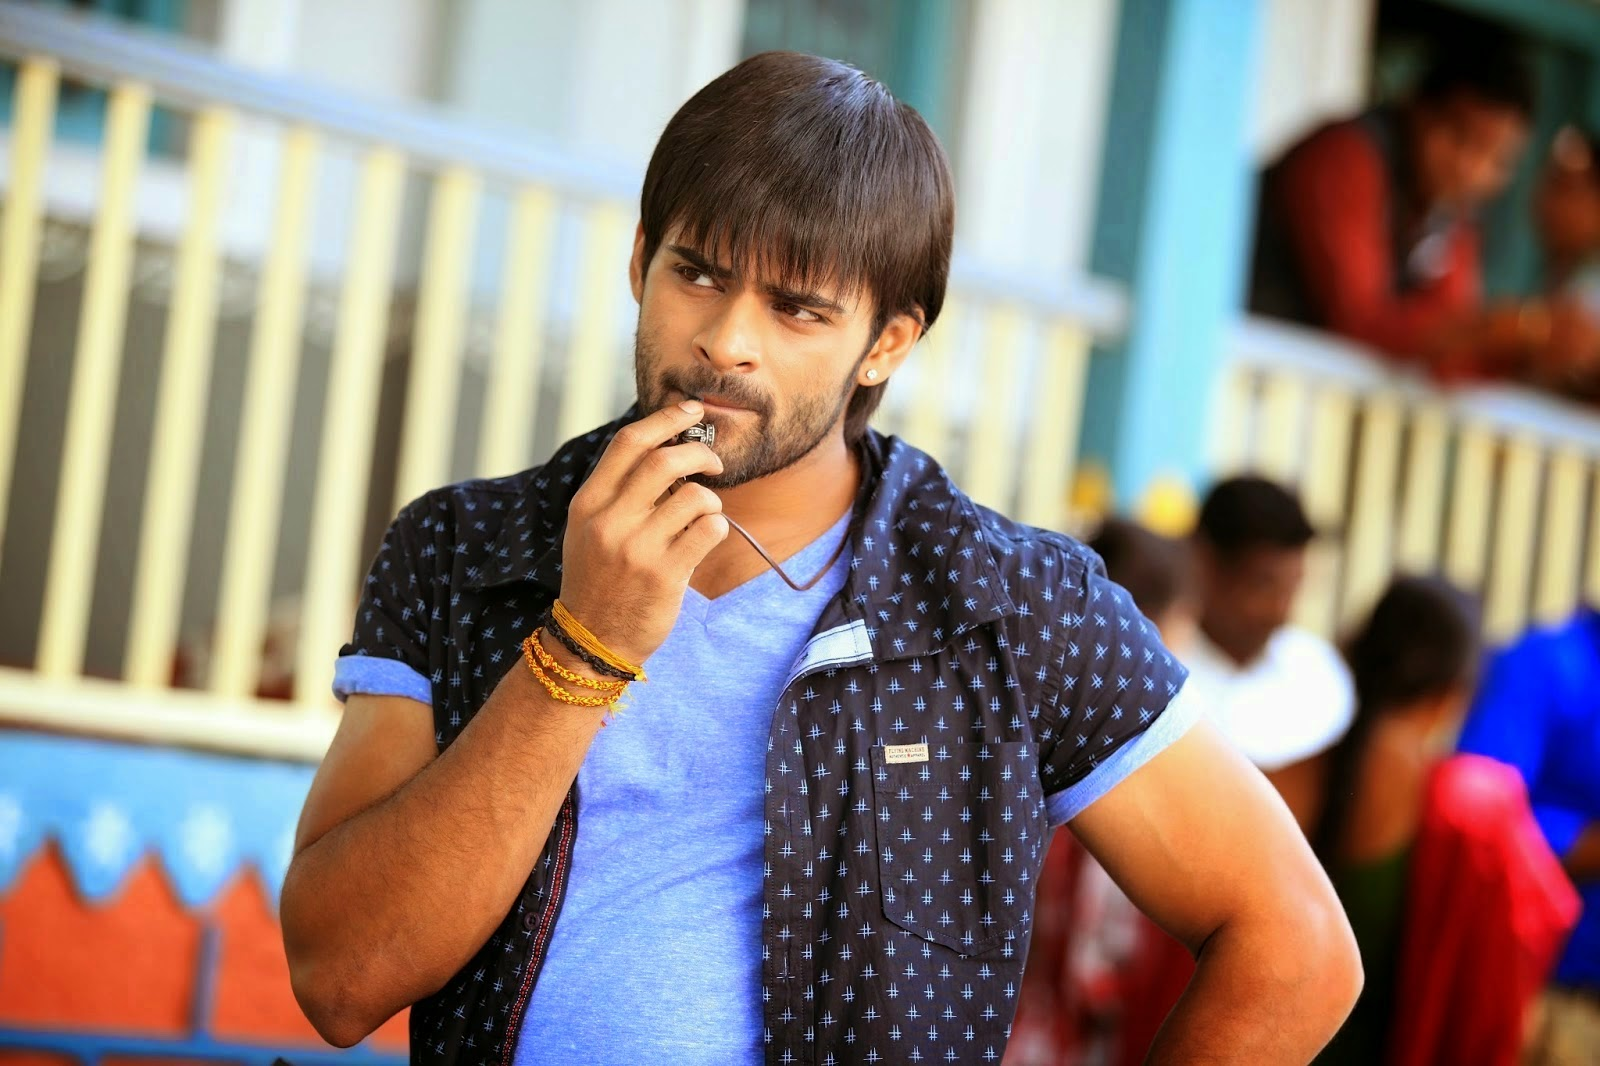 Sai Dharam Tej Latest Stills From Pilla Nuvvu Leni jeevitham